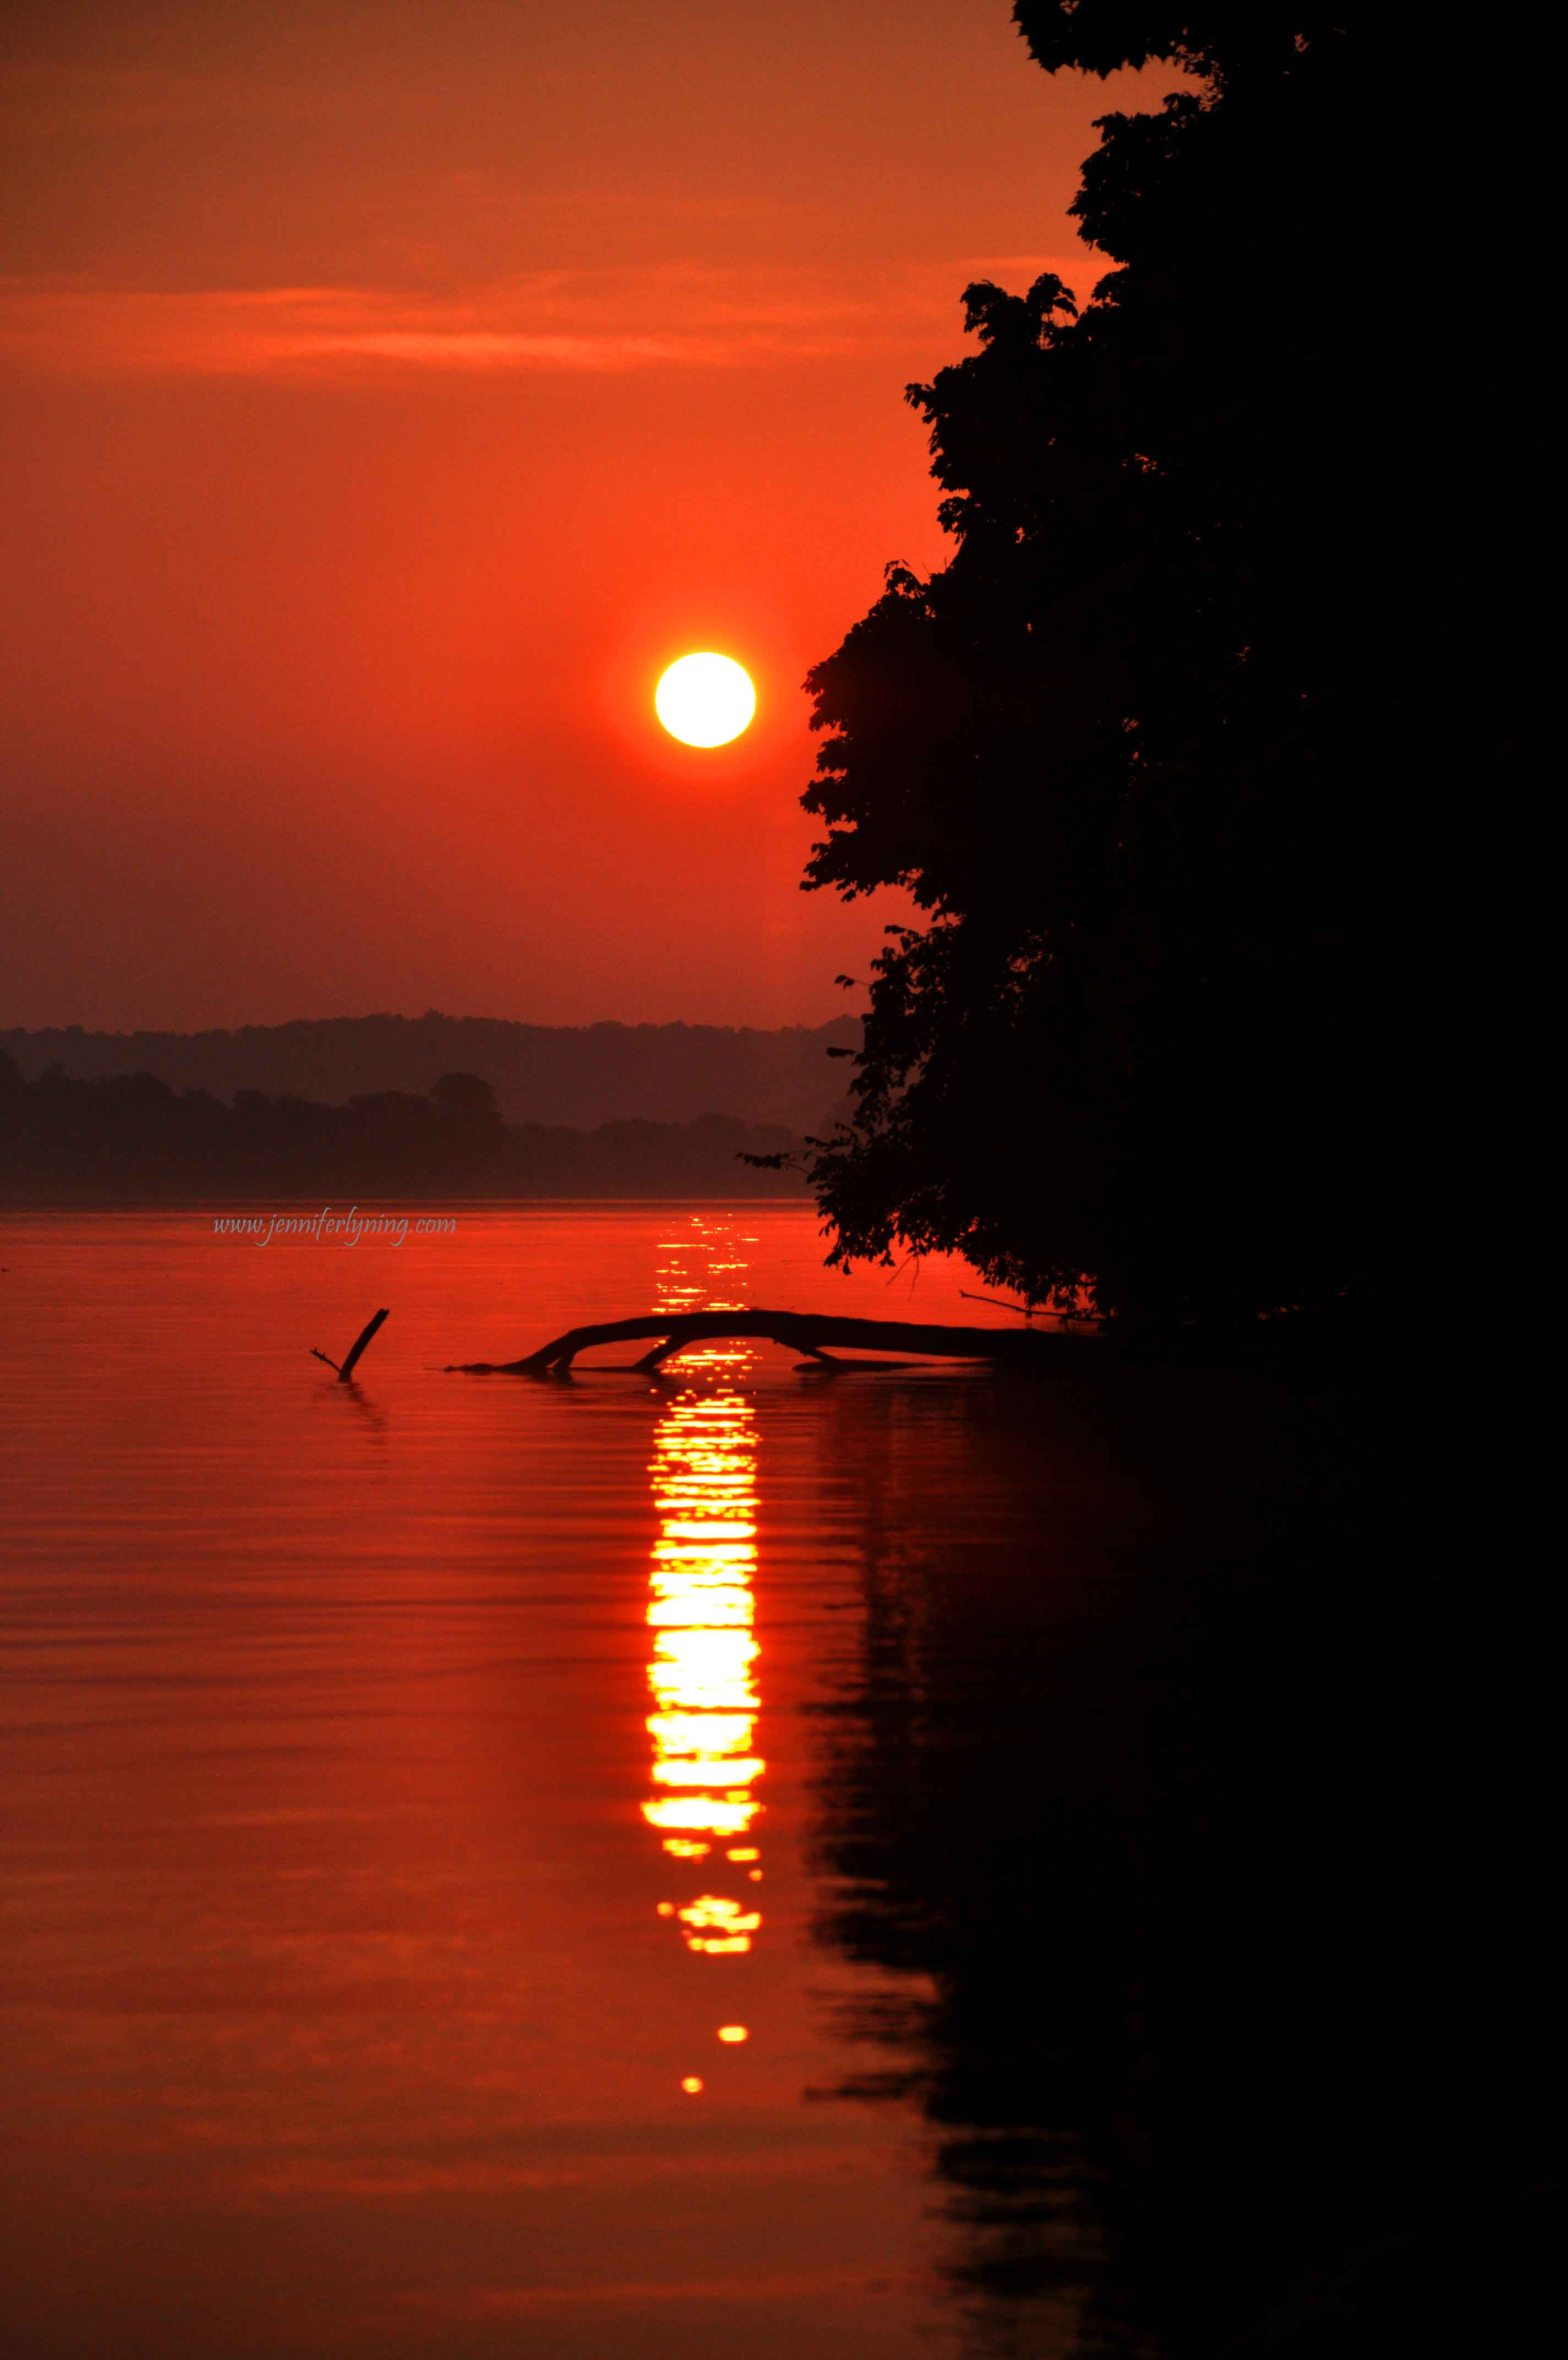 Tangerine Sunrise, Ohio River